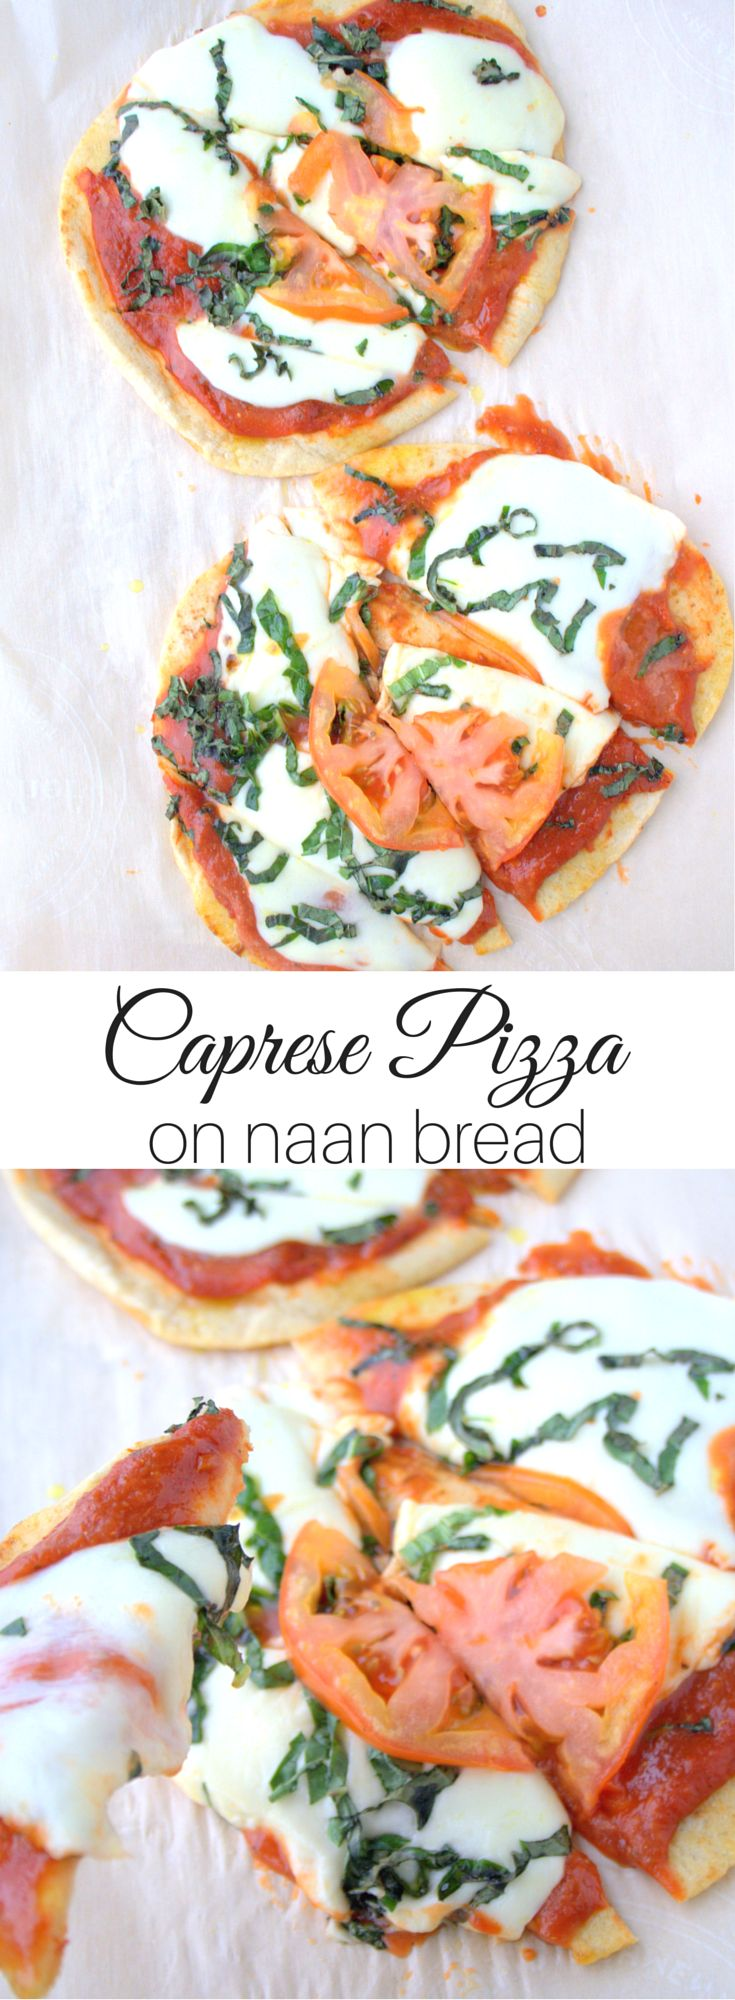 This is the yummiest, easiest pizza I've ever made! | The Refreshanista